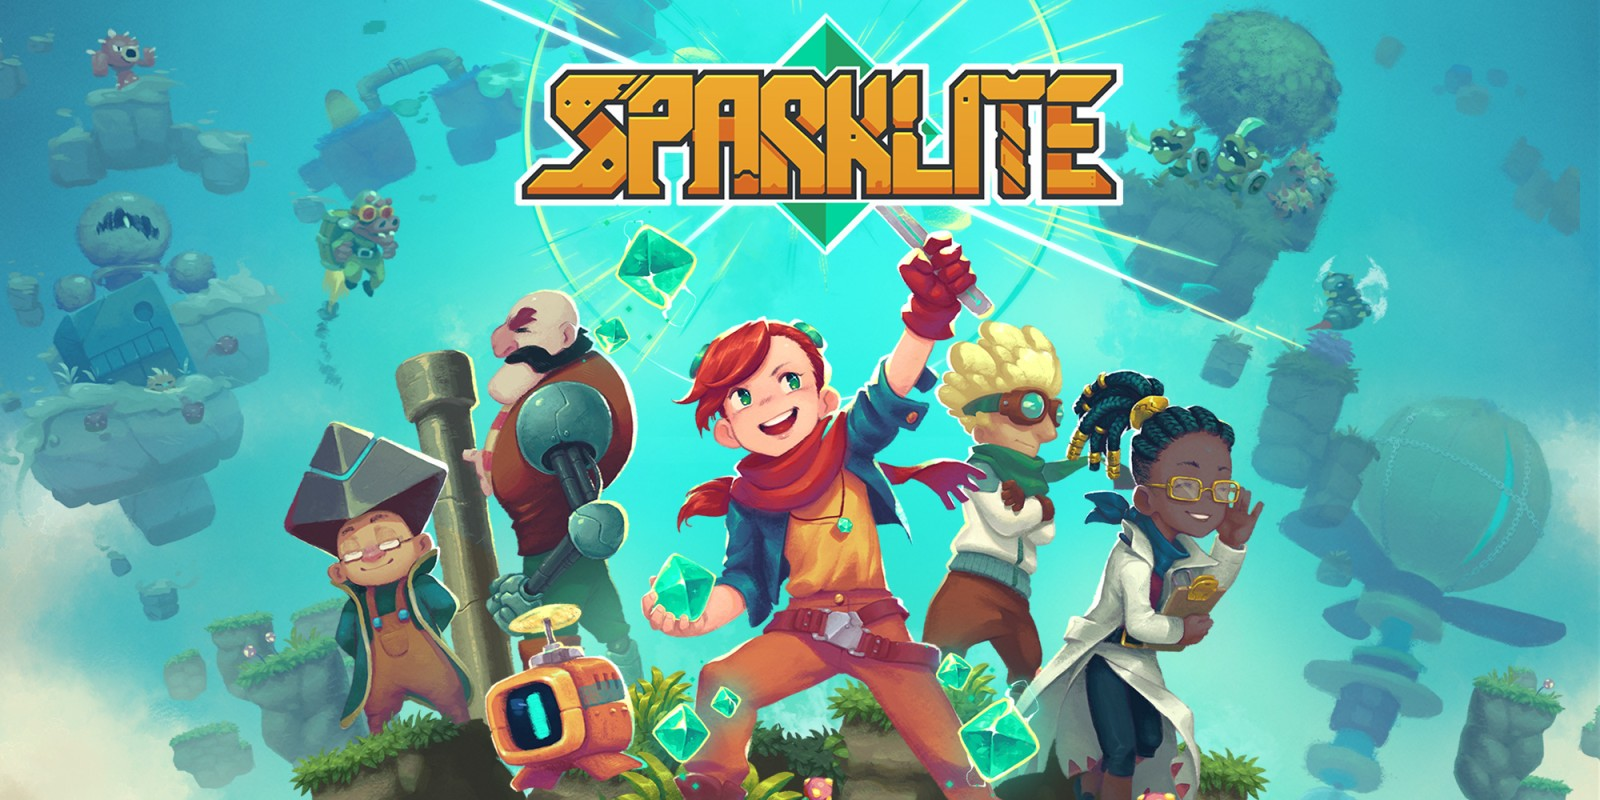 Adventure, Gadgets, And Exploration Abound In Sparklite, Coming To Switch In November